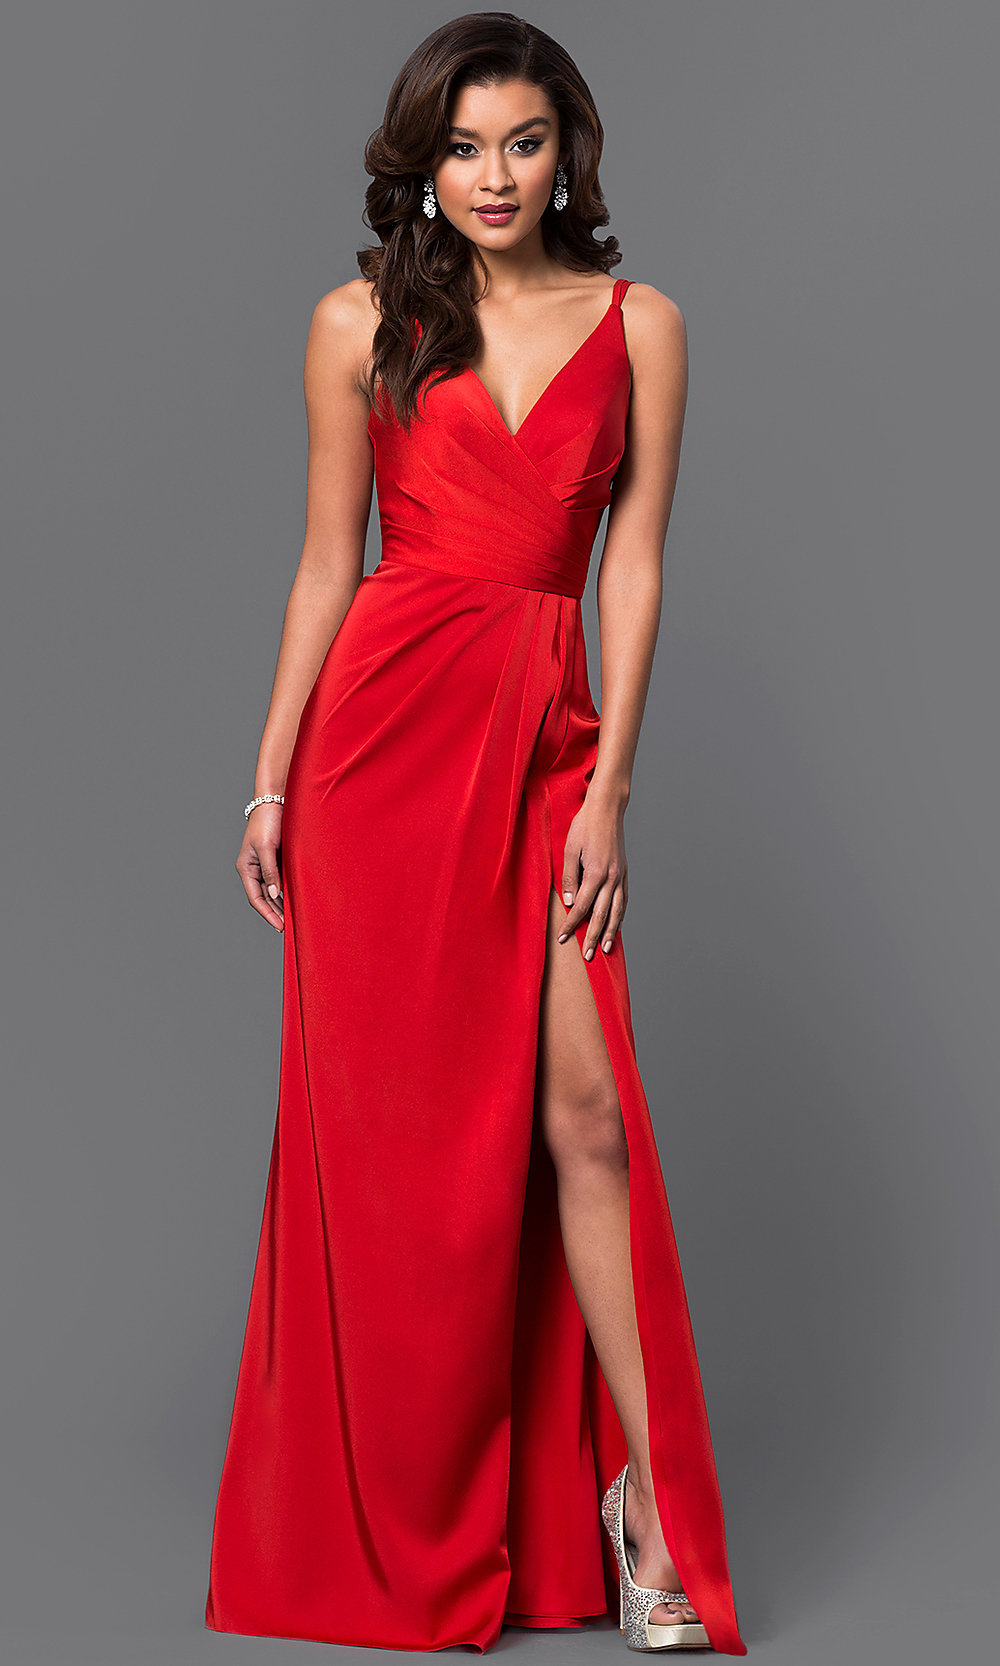 Red Floor Length Dress